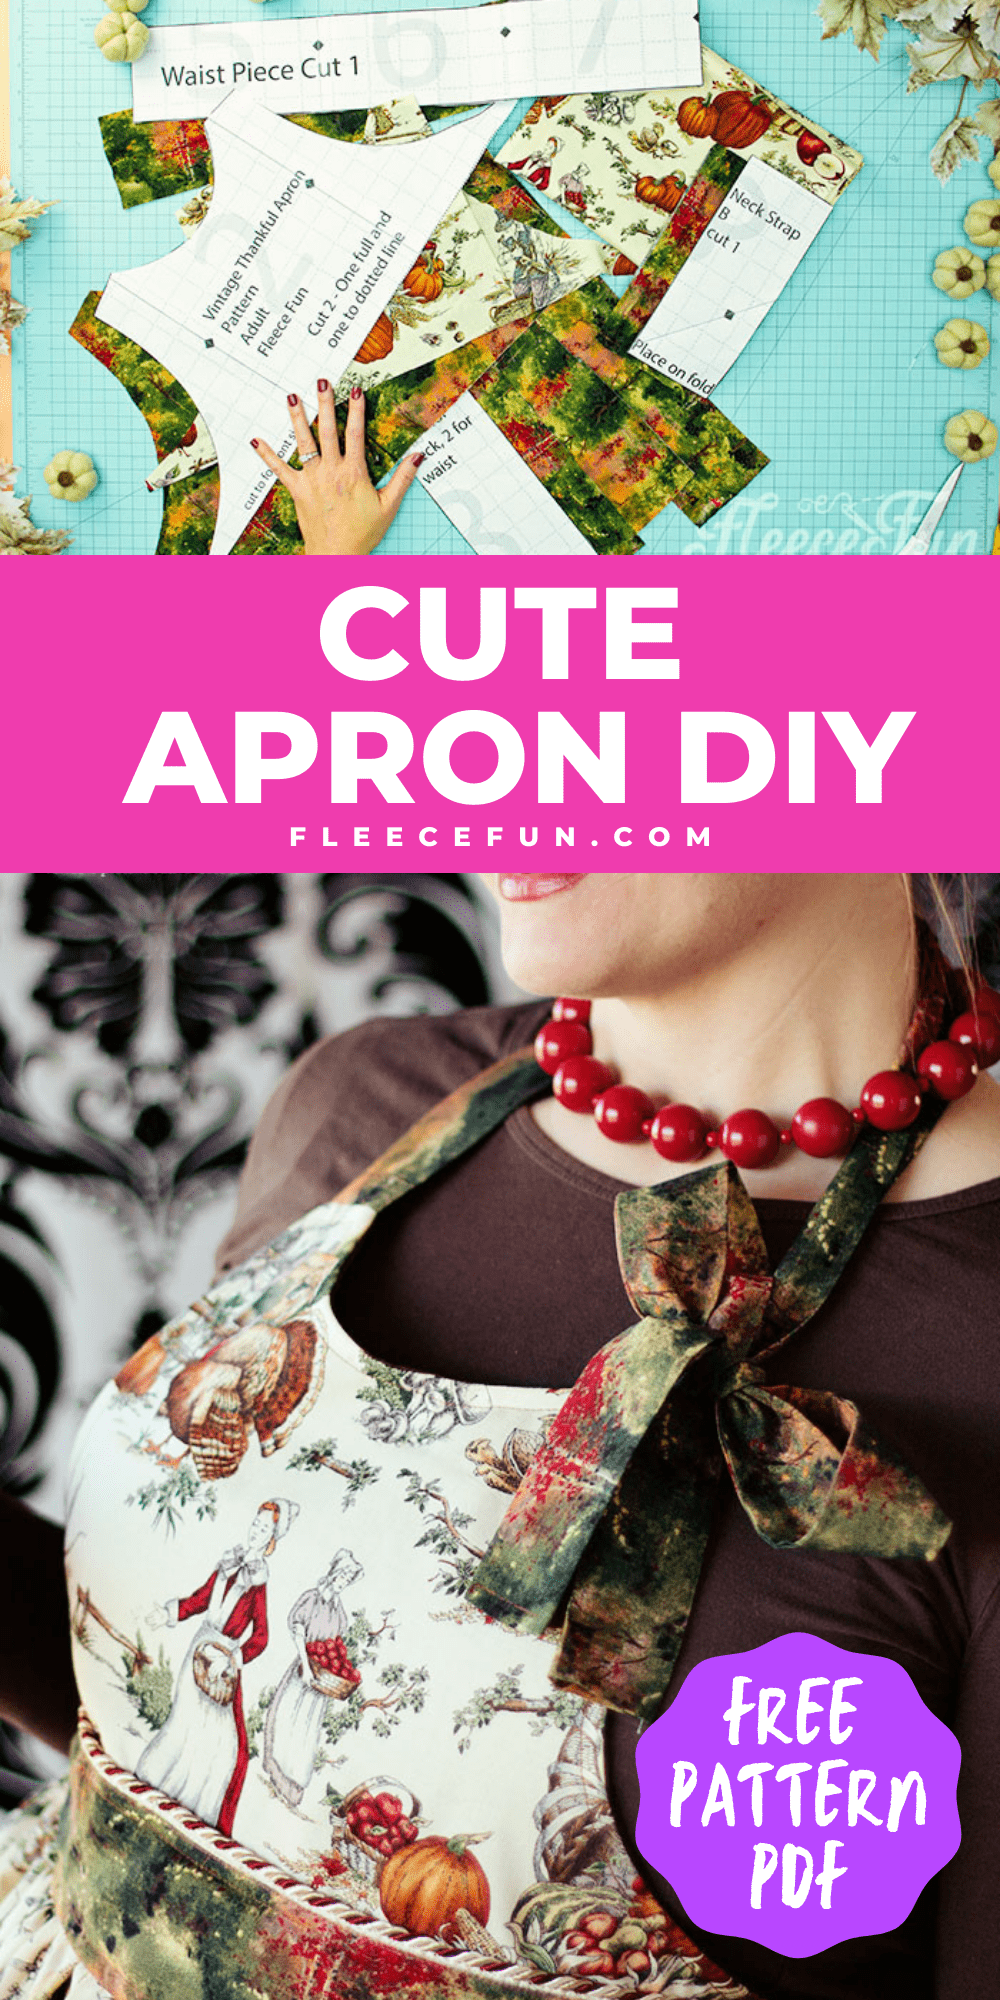 This Free apron pattern and tutorial includeas a pdf pattern and video! Make a vintage style apron that is chic.